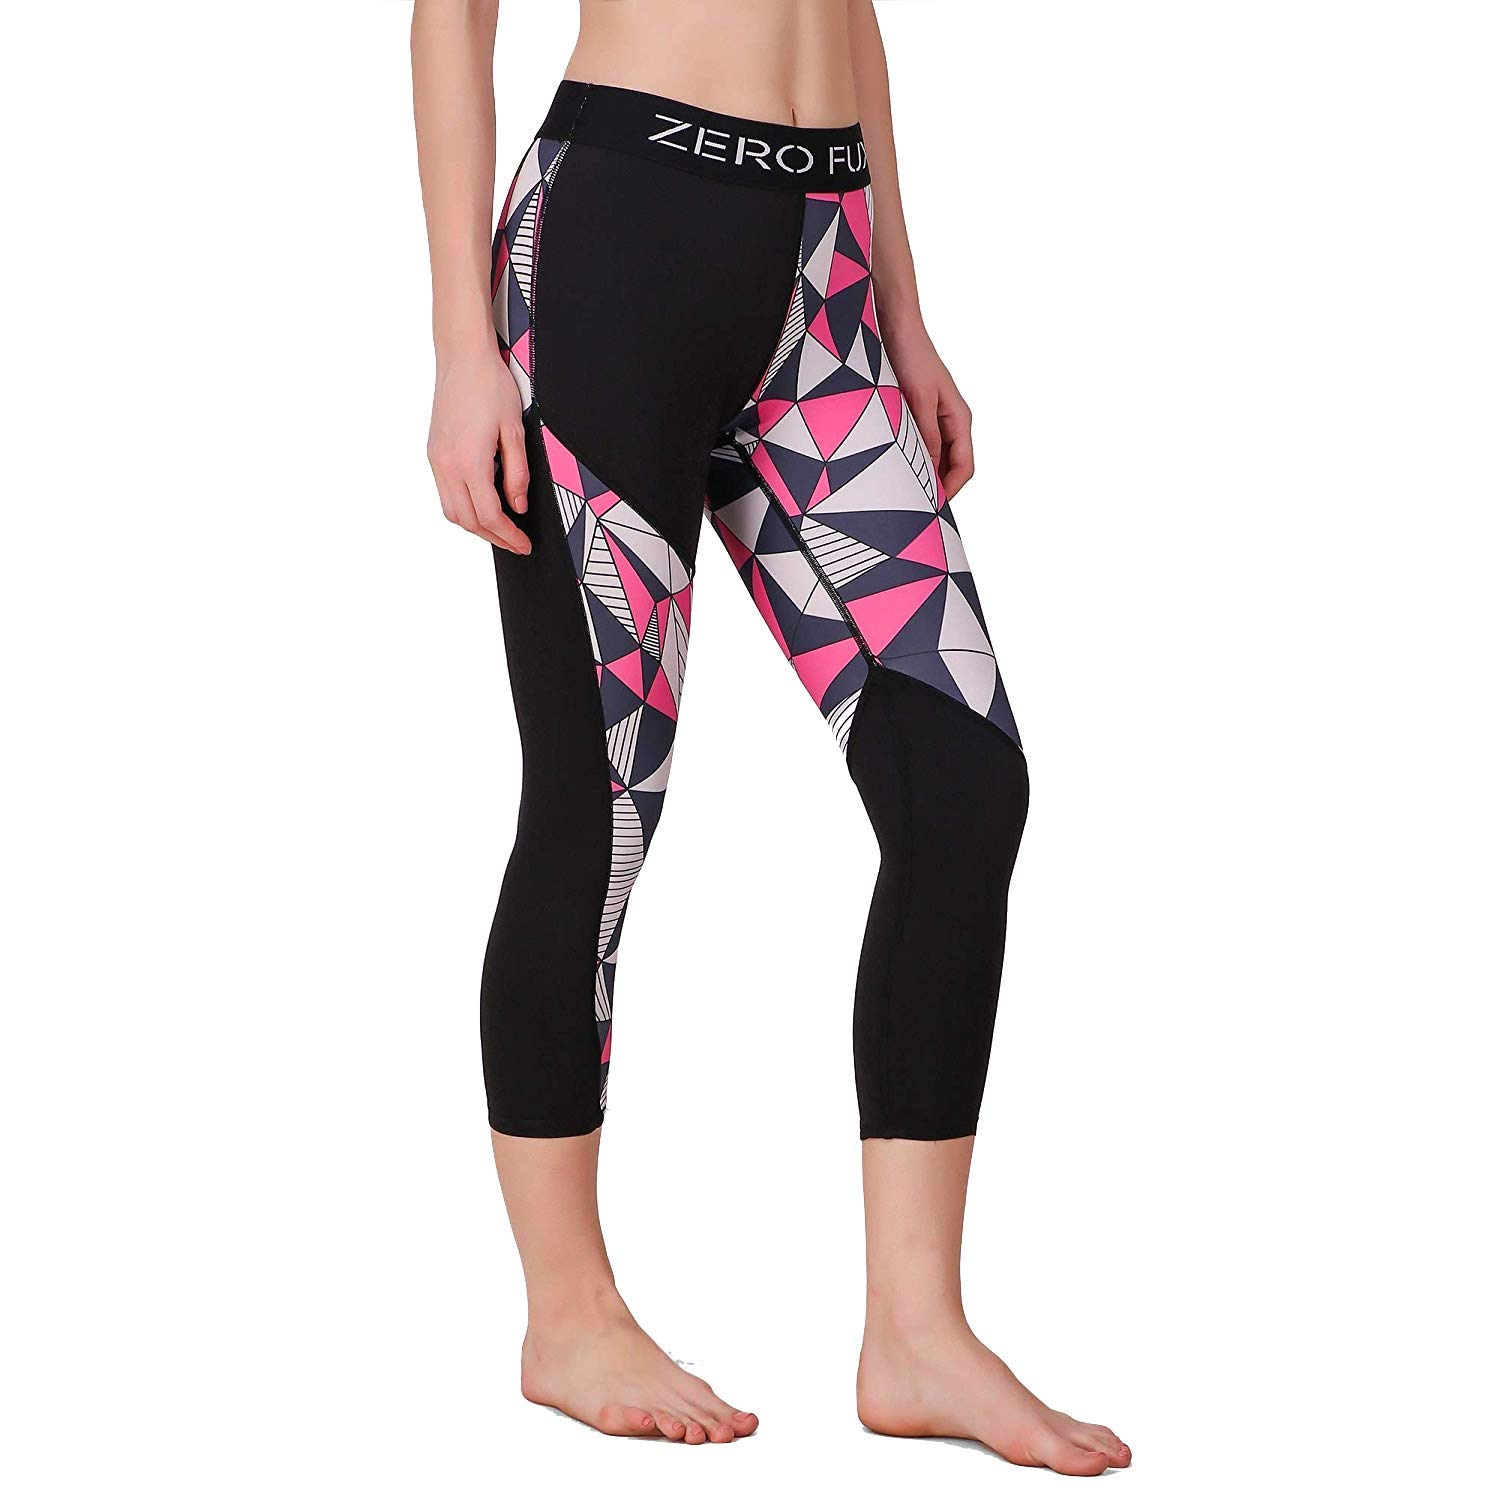 ca8a4214aed52 ZeroFux ZF Hyper-Breathe Yoga Gym Workout Sports Fitness & Active wear  Stretchable Pink Polygons Leggings Tights for Women: Amazon.in: Clothing &  ...